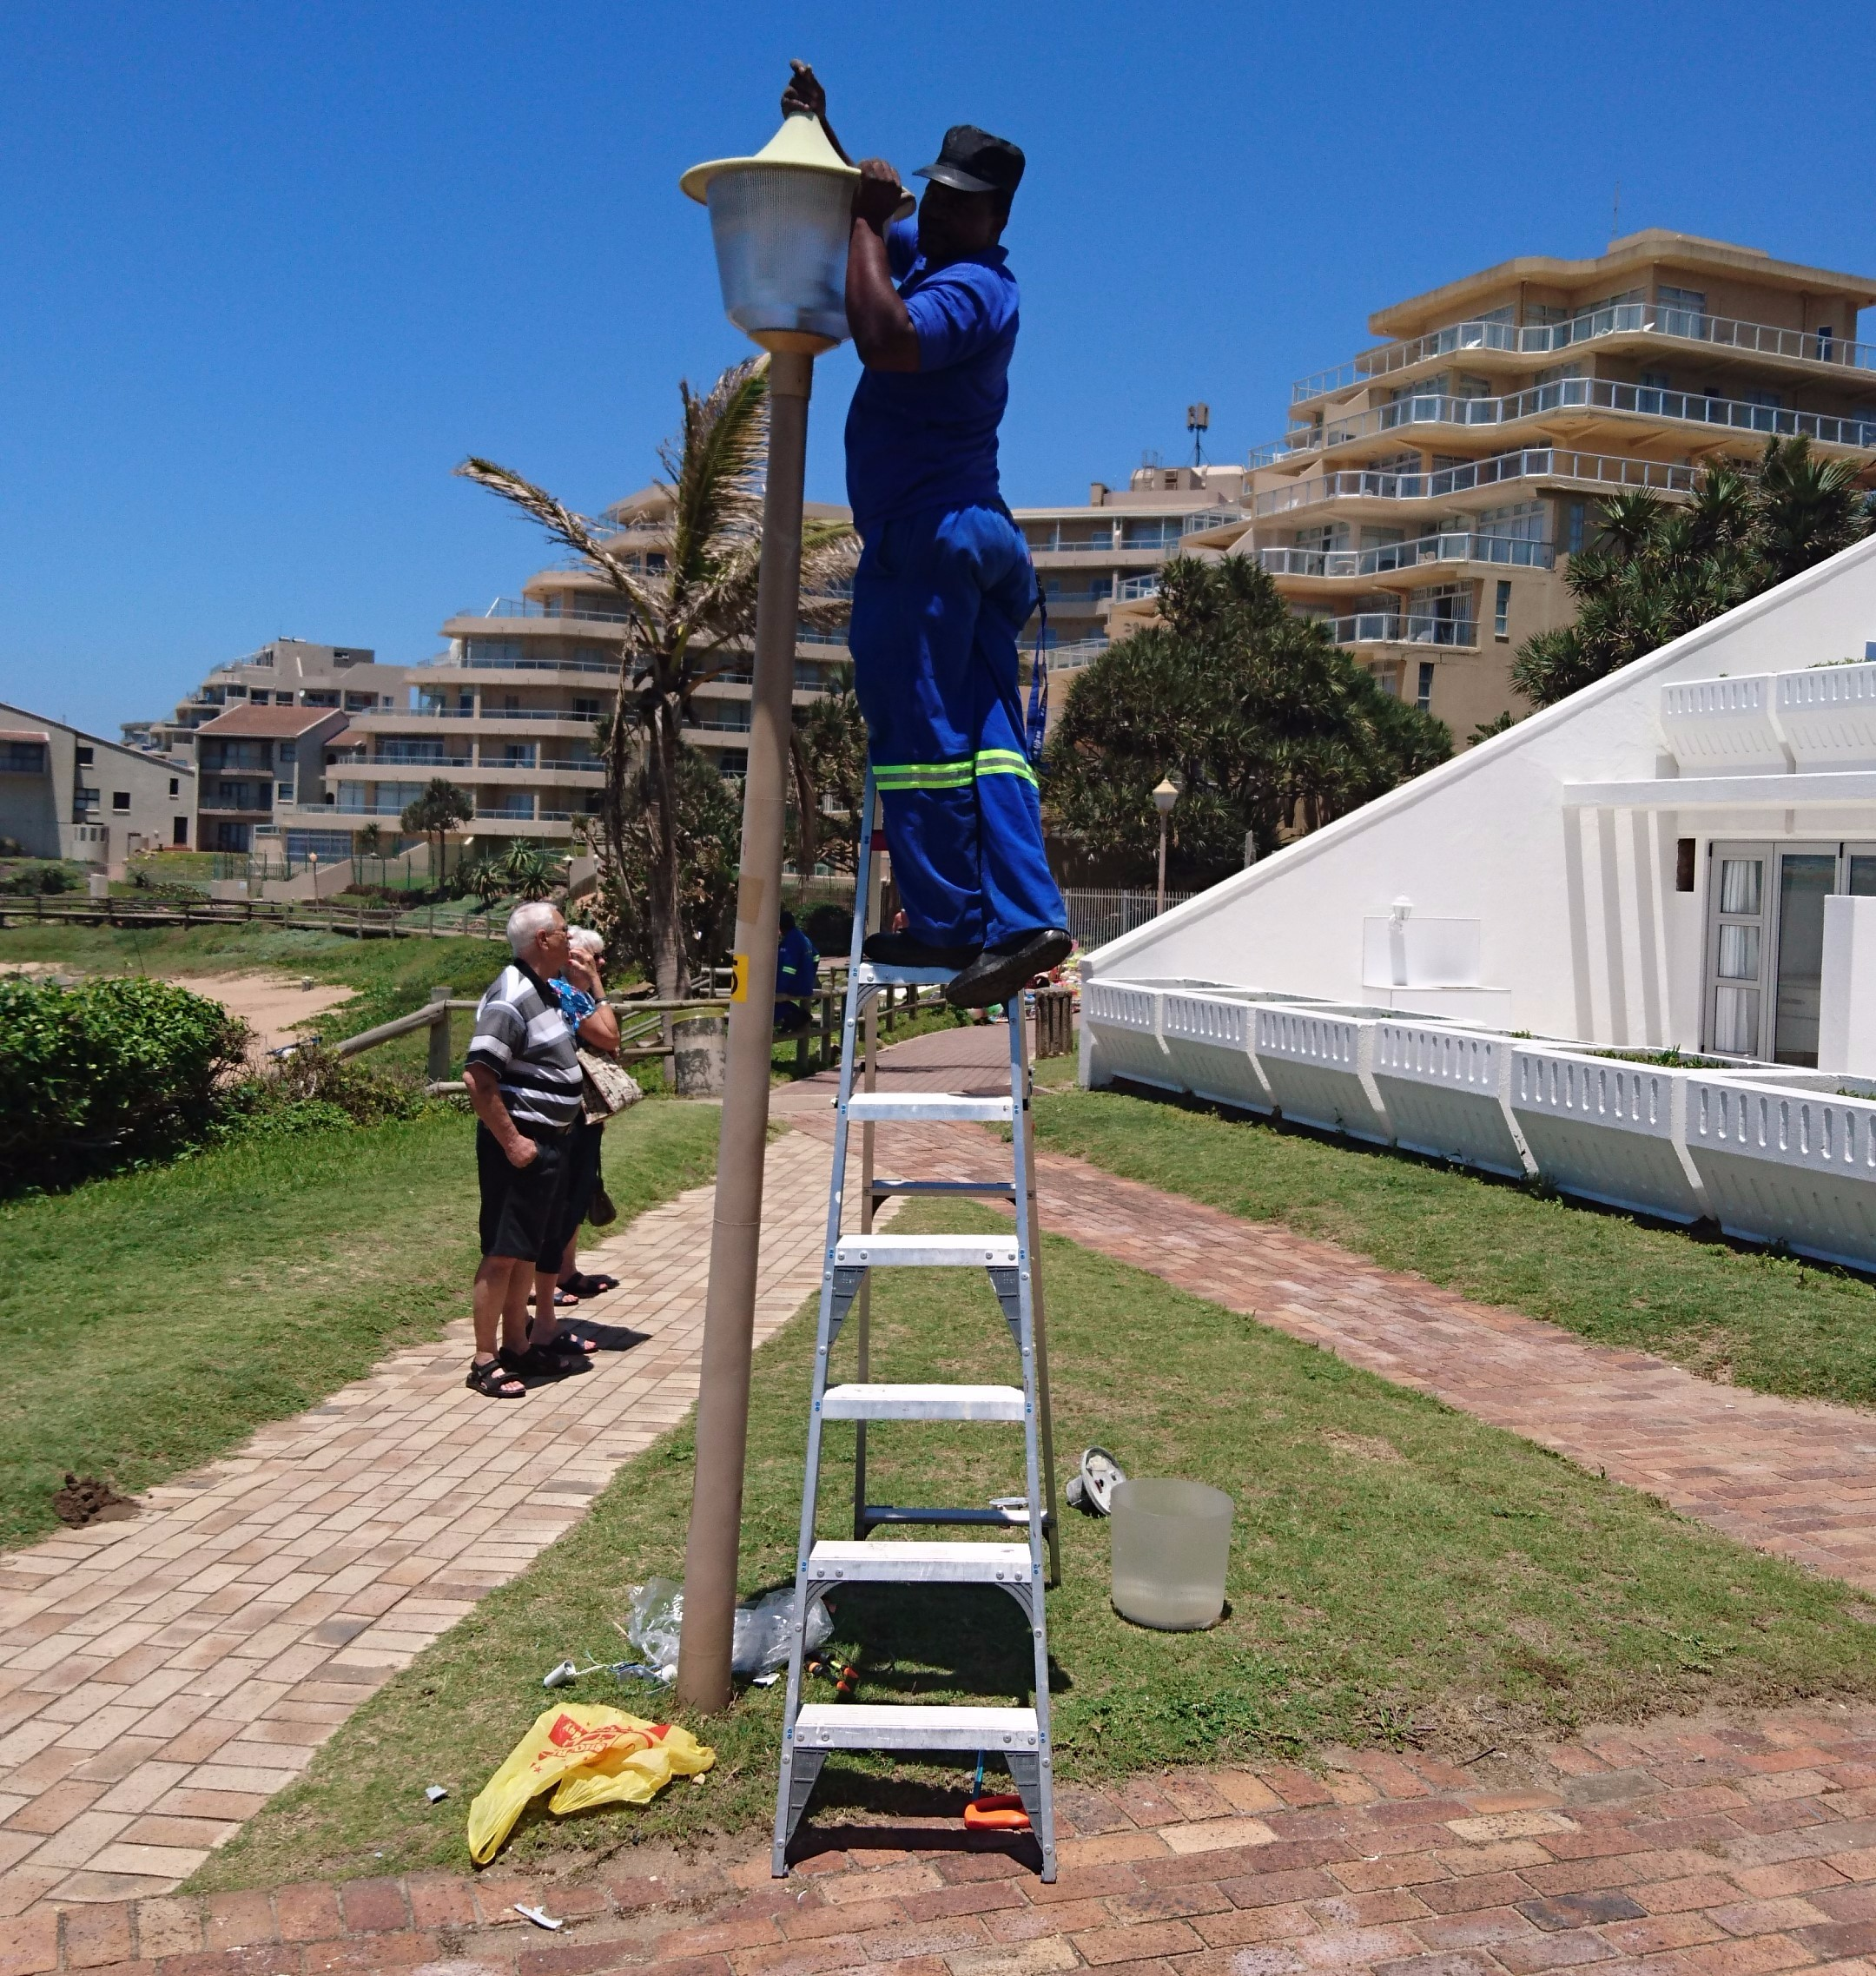 Bheki fixing lights on the promenade